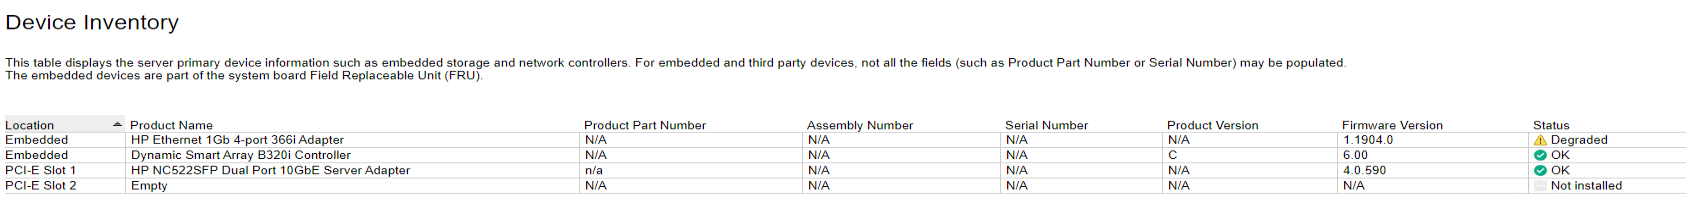 Device Inventory.png